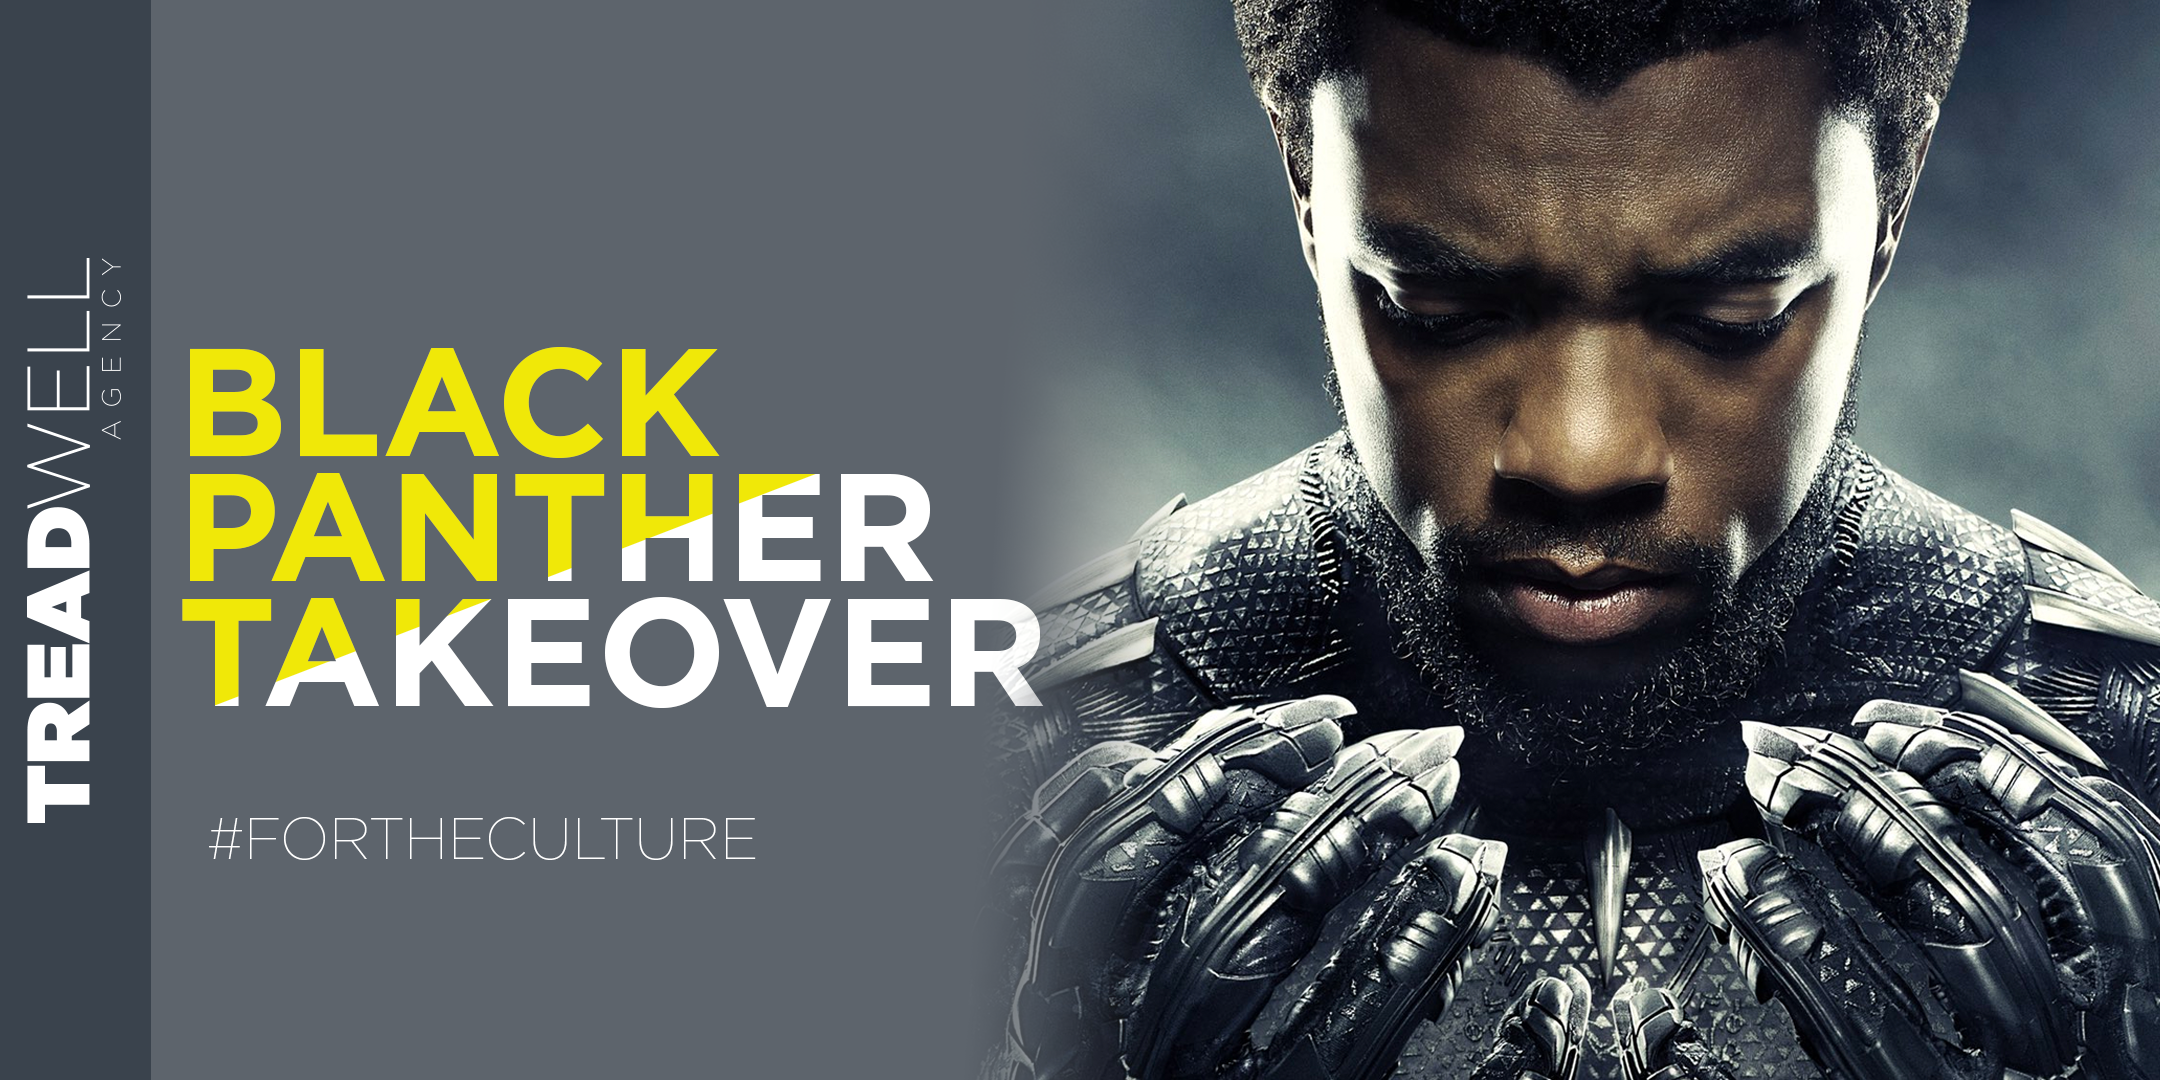 Black Panther Theater Takeover - Treadwell Ag